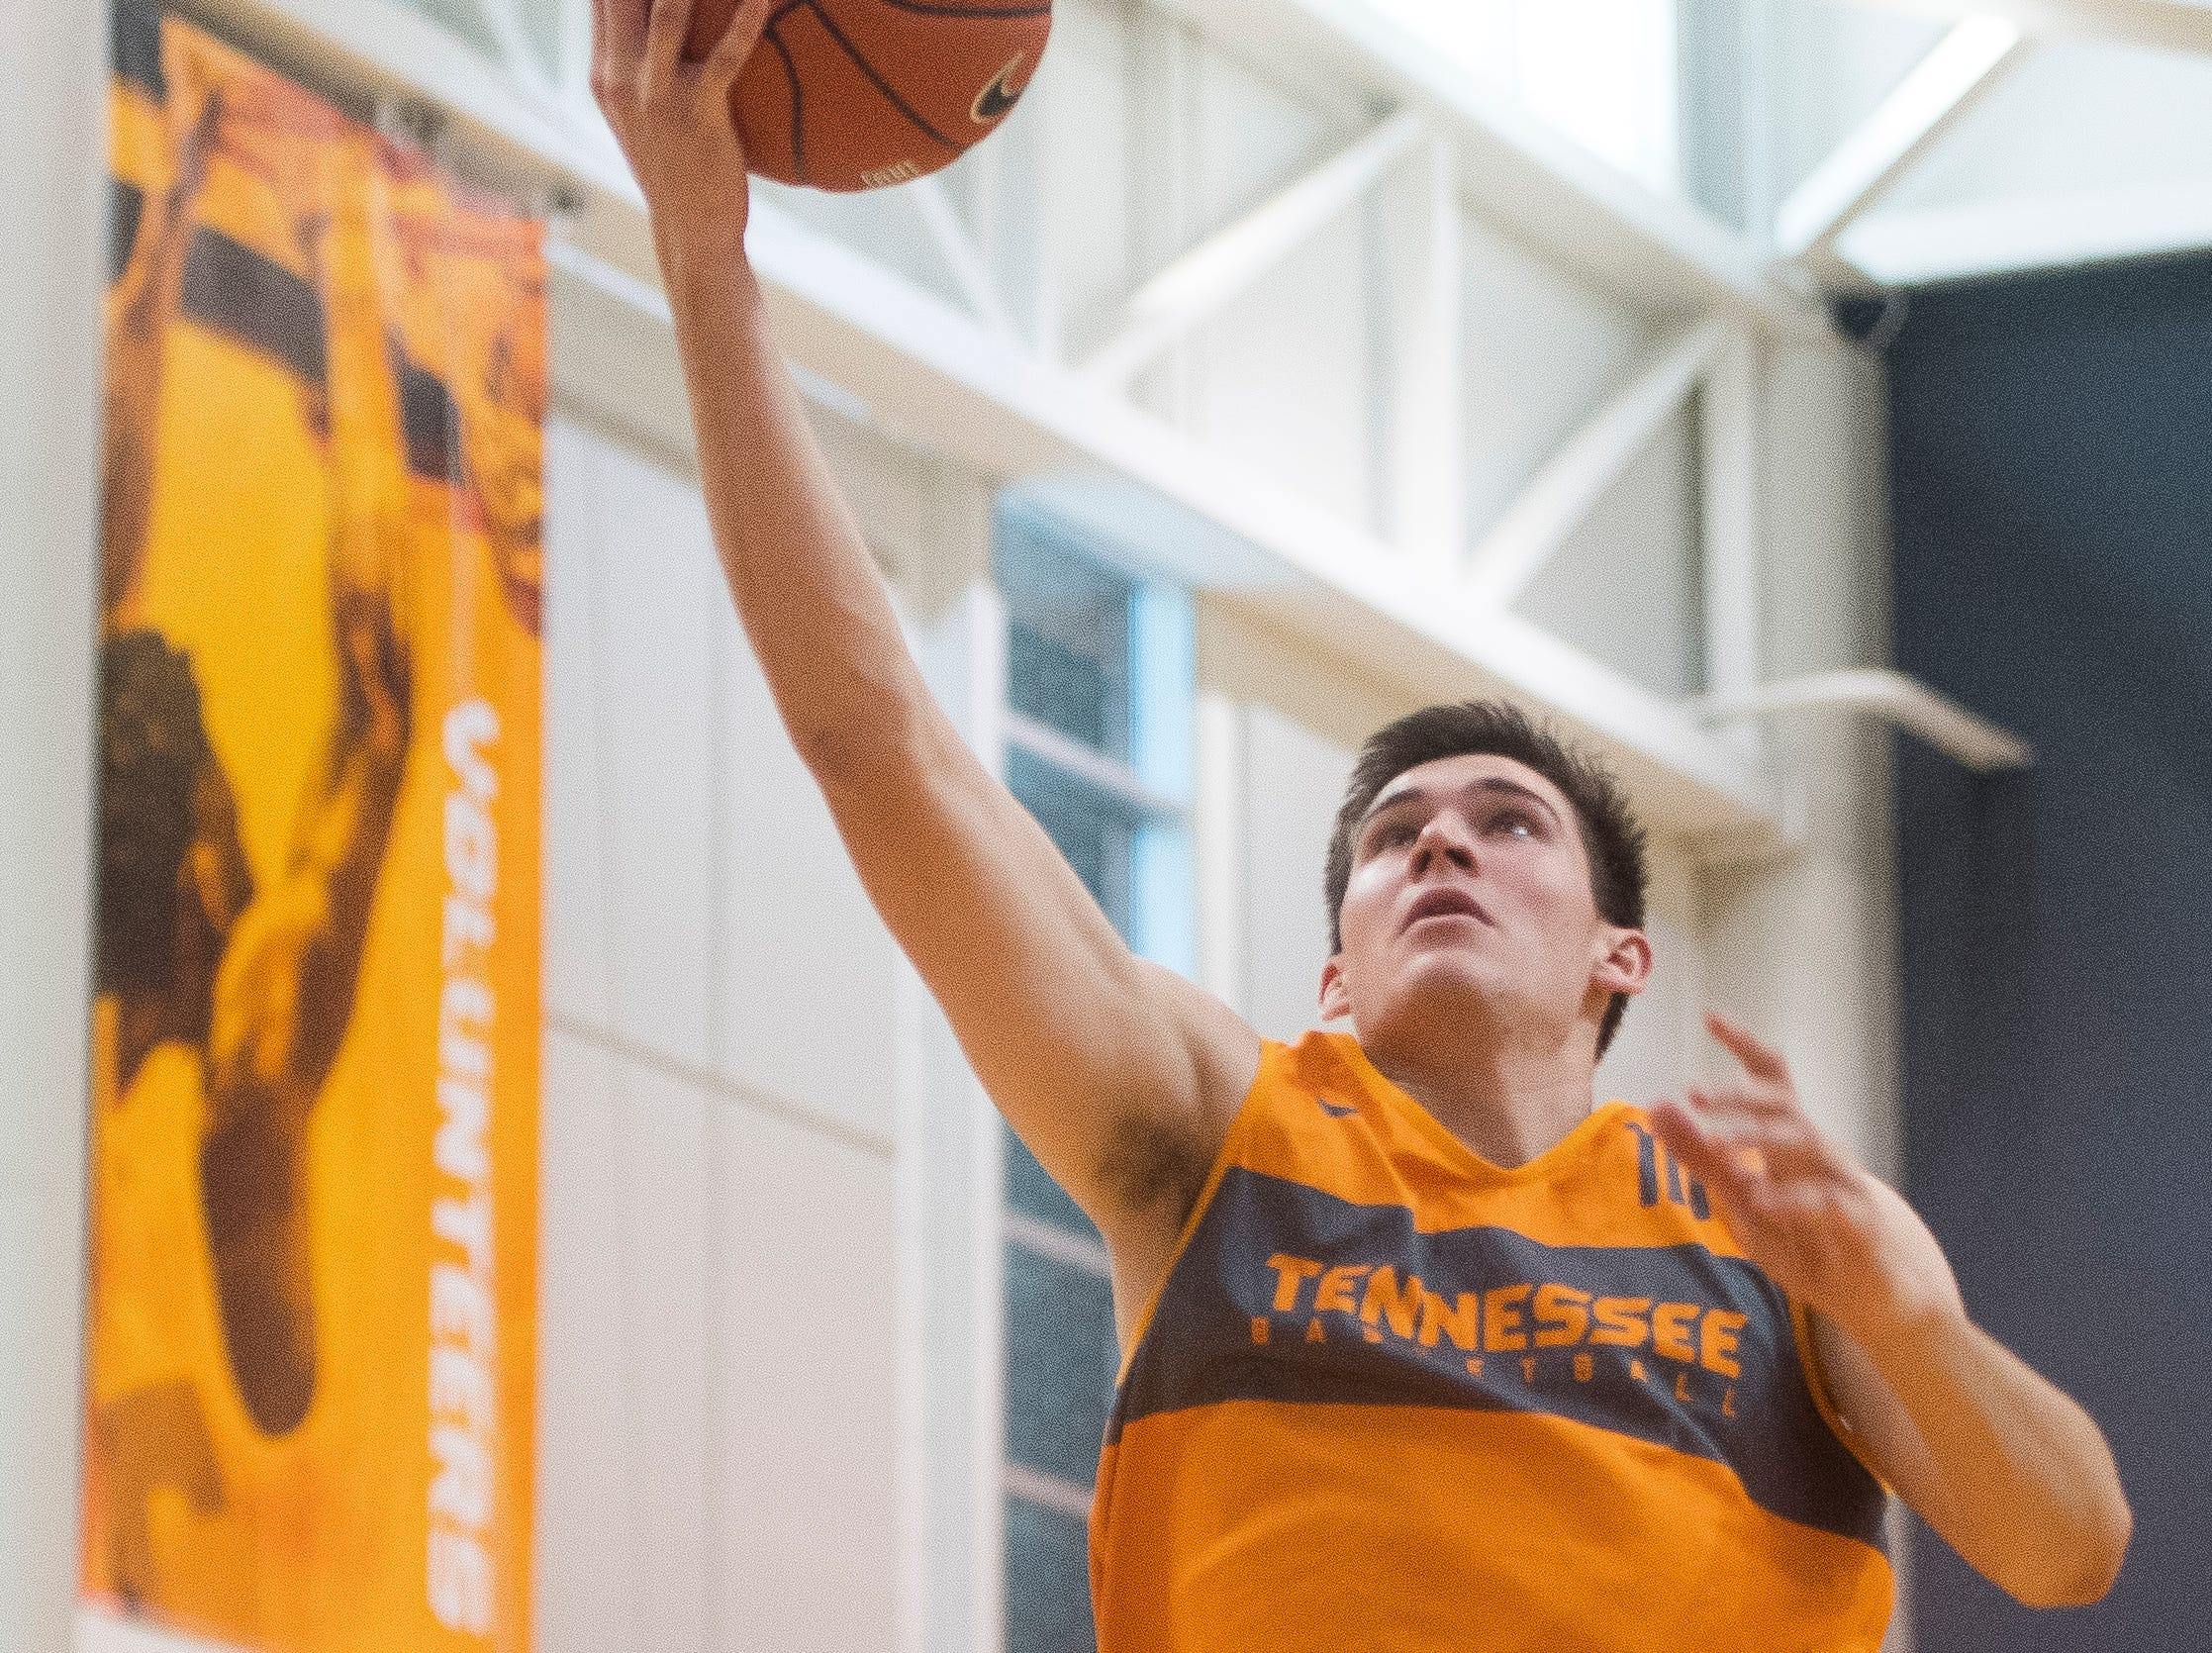 Tennessee forward John Fulkerson (10) goes for a layup during basketball practice at Pratt Pavilion on the University of Tennessee's campus on Thursday, October 4, 2018.